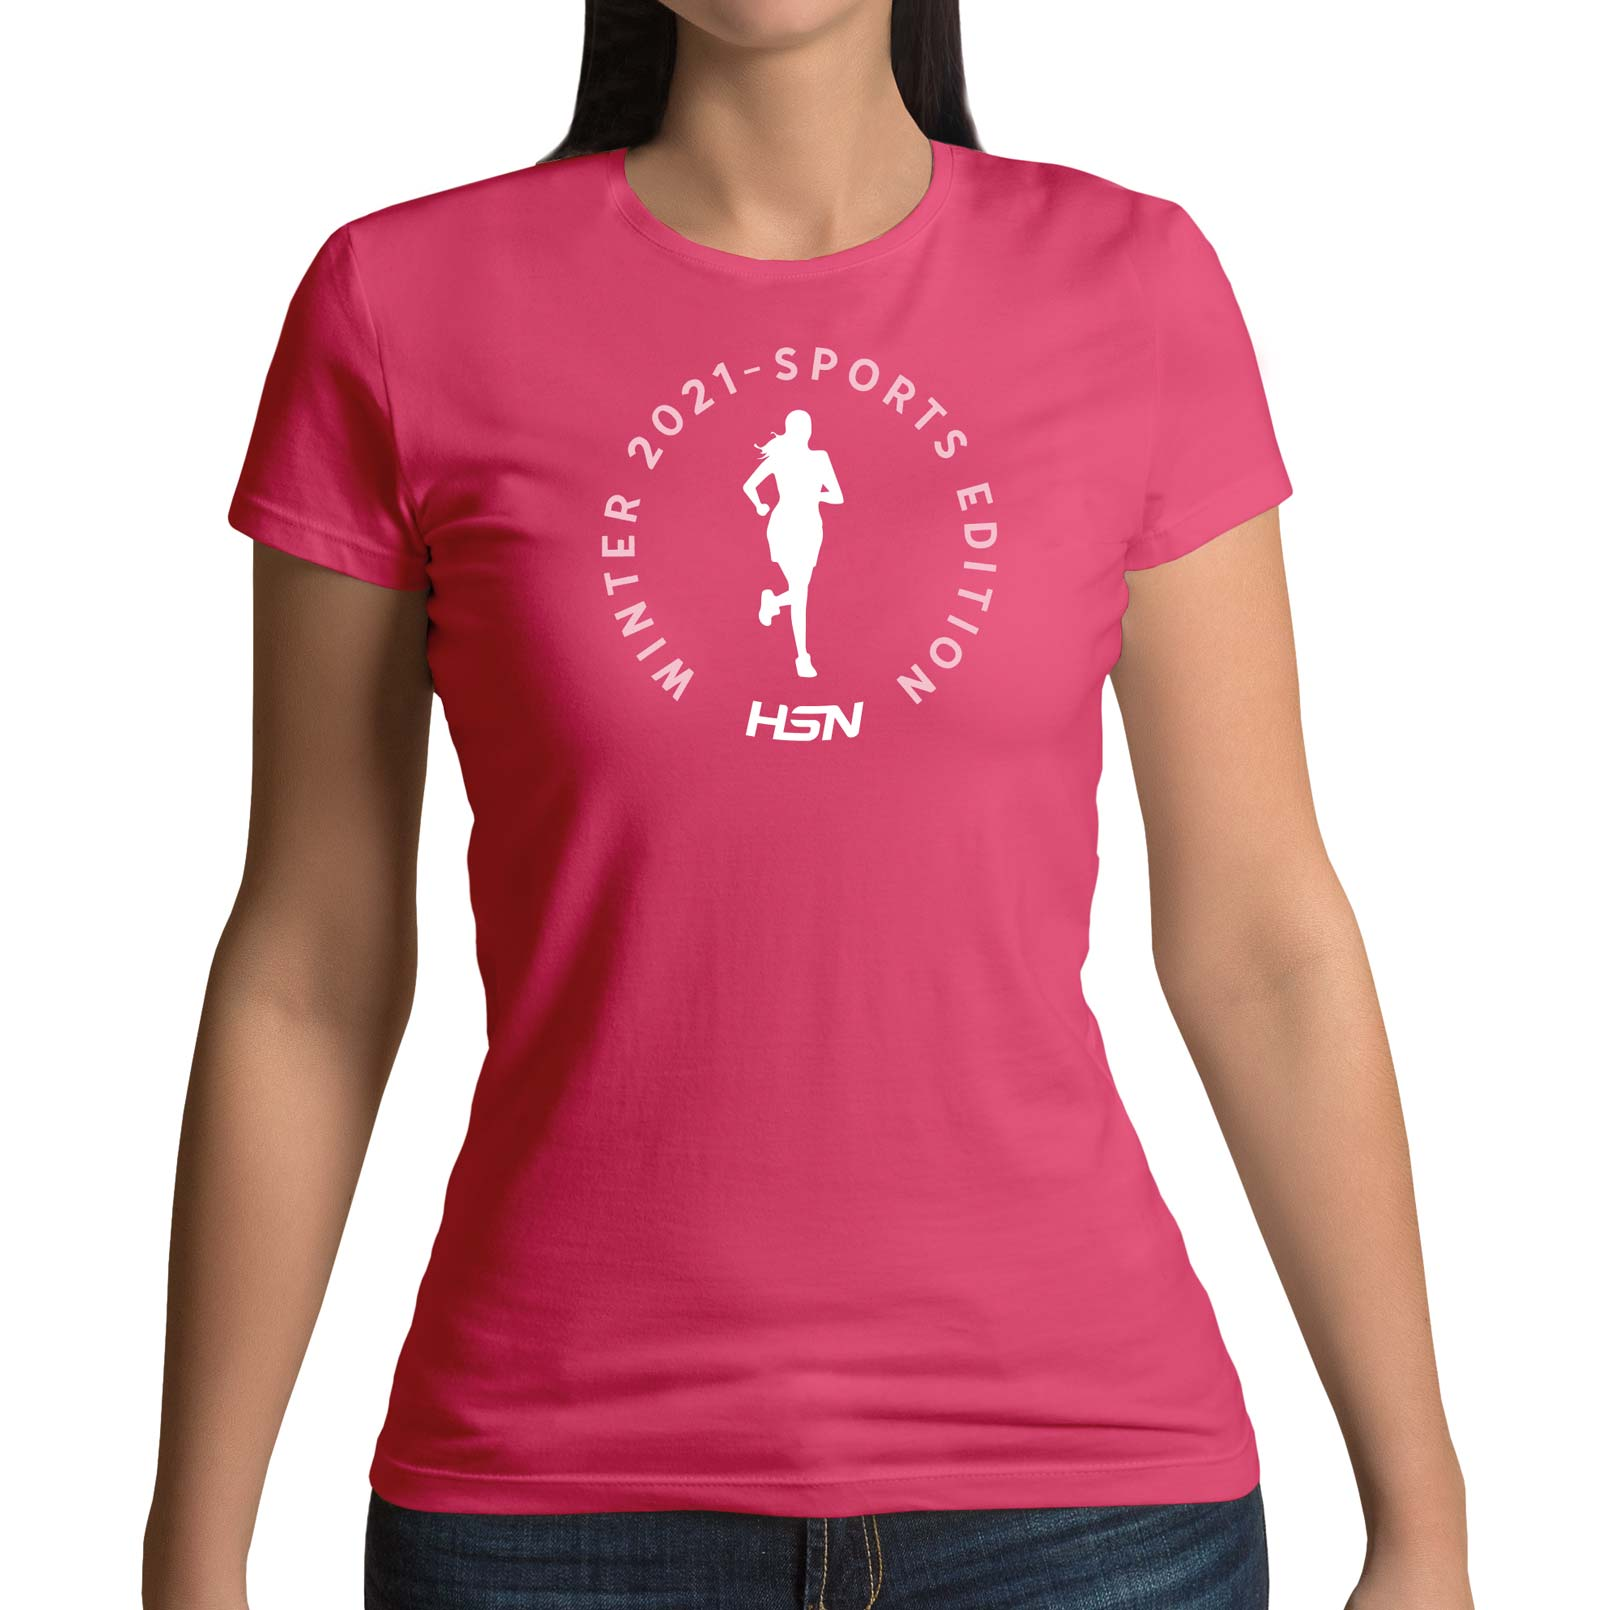 CAMISETA CHICA WINTER 2021 SPORTS EDITION RUNNING FUCSIA - L